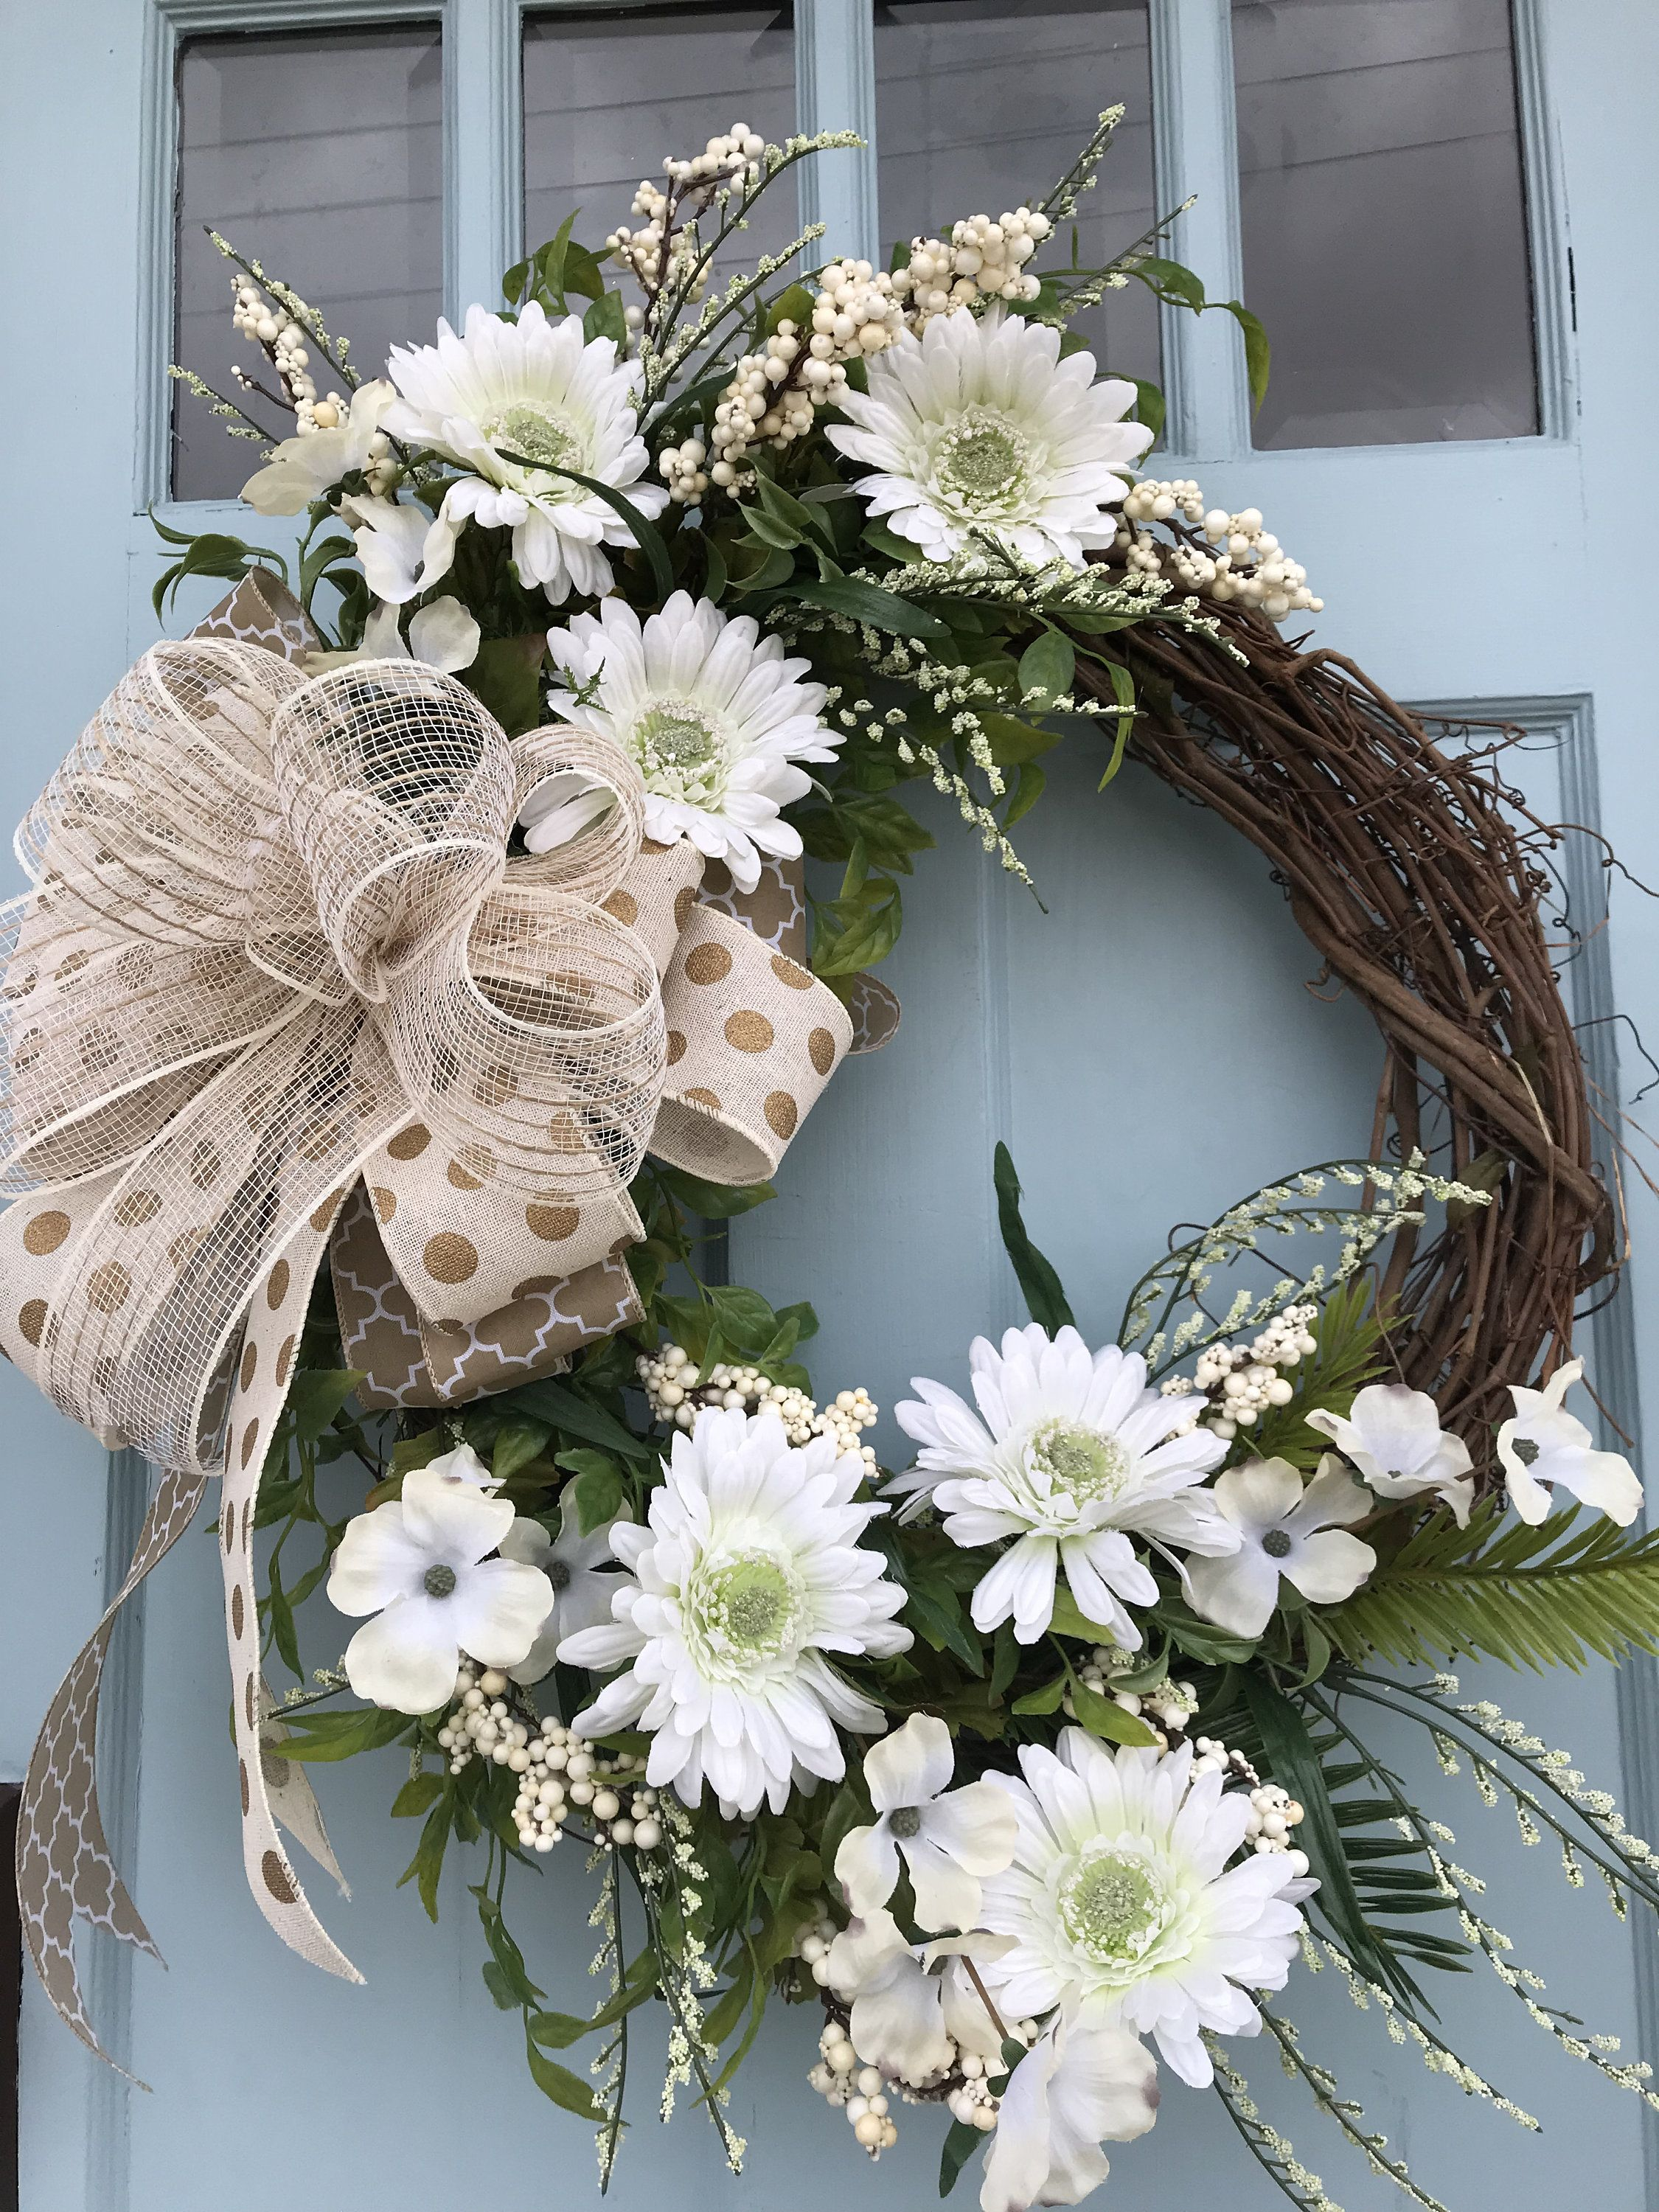 Beautifully Elegant White Floral Grapevine Wreath For Door Wreaths Wreaths For Front Door Farmhouse Christmas Spring Wreath Wreaths For Front Door Door Wreaths Diy